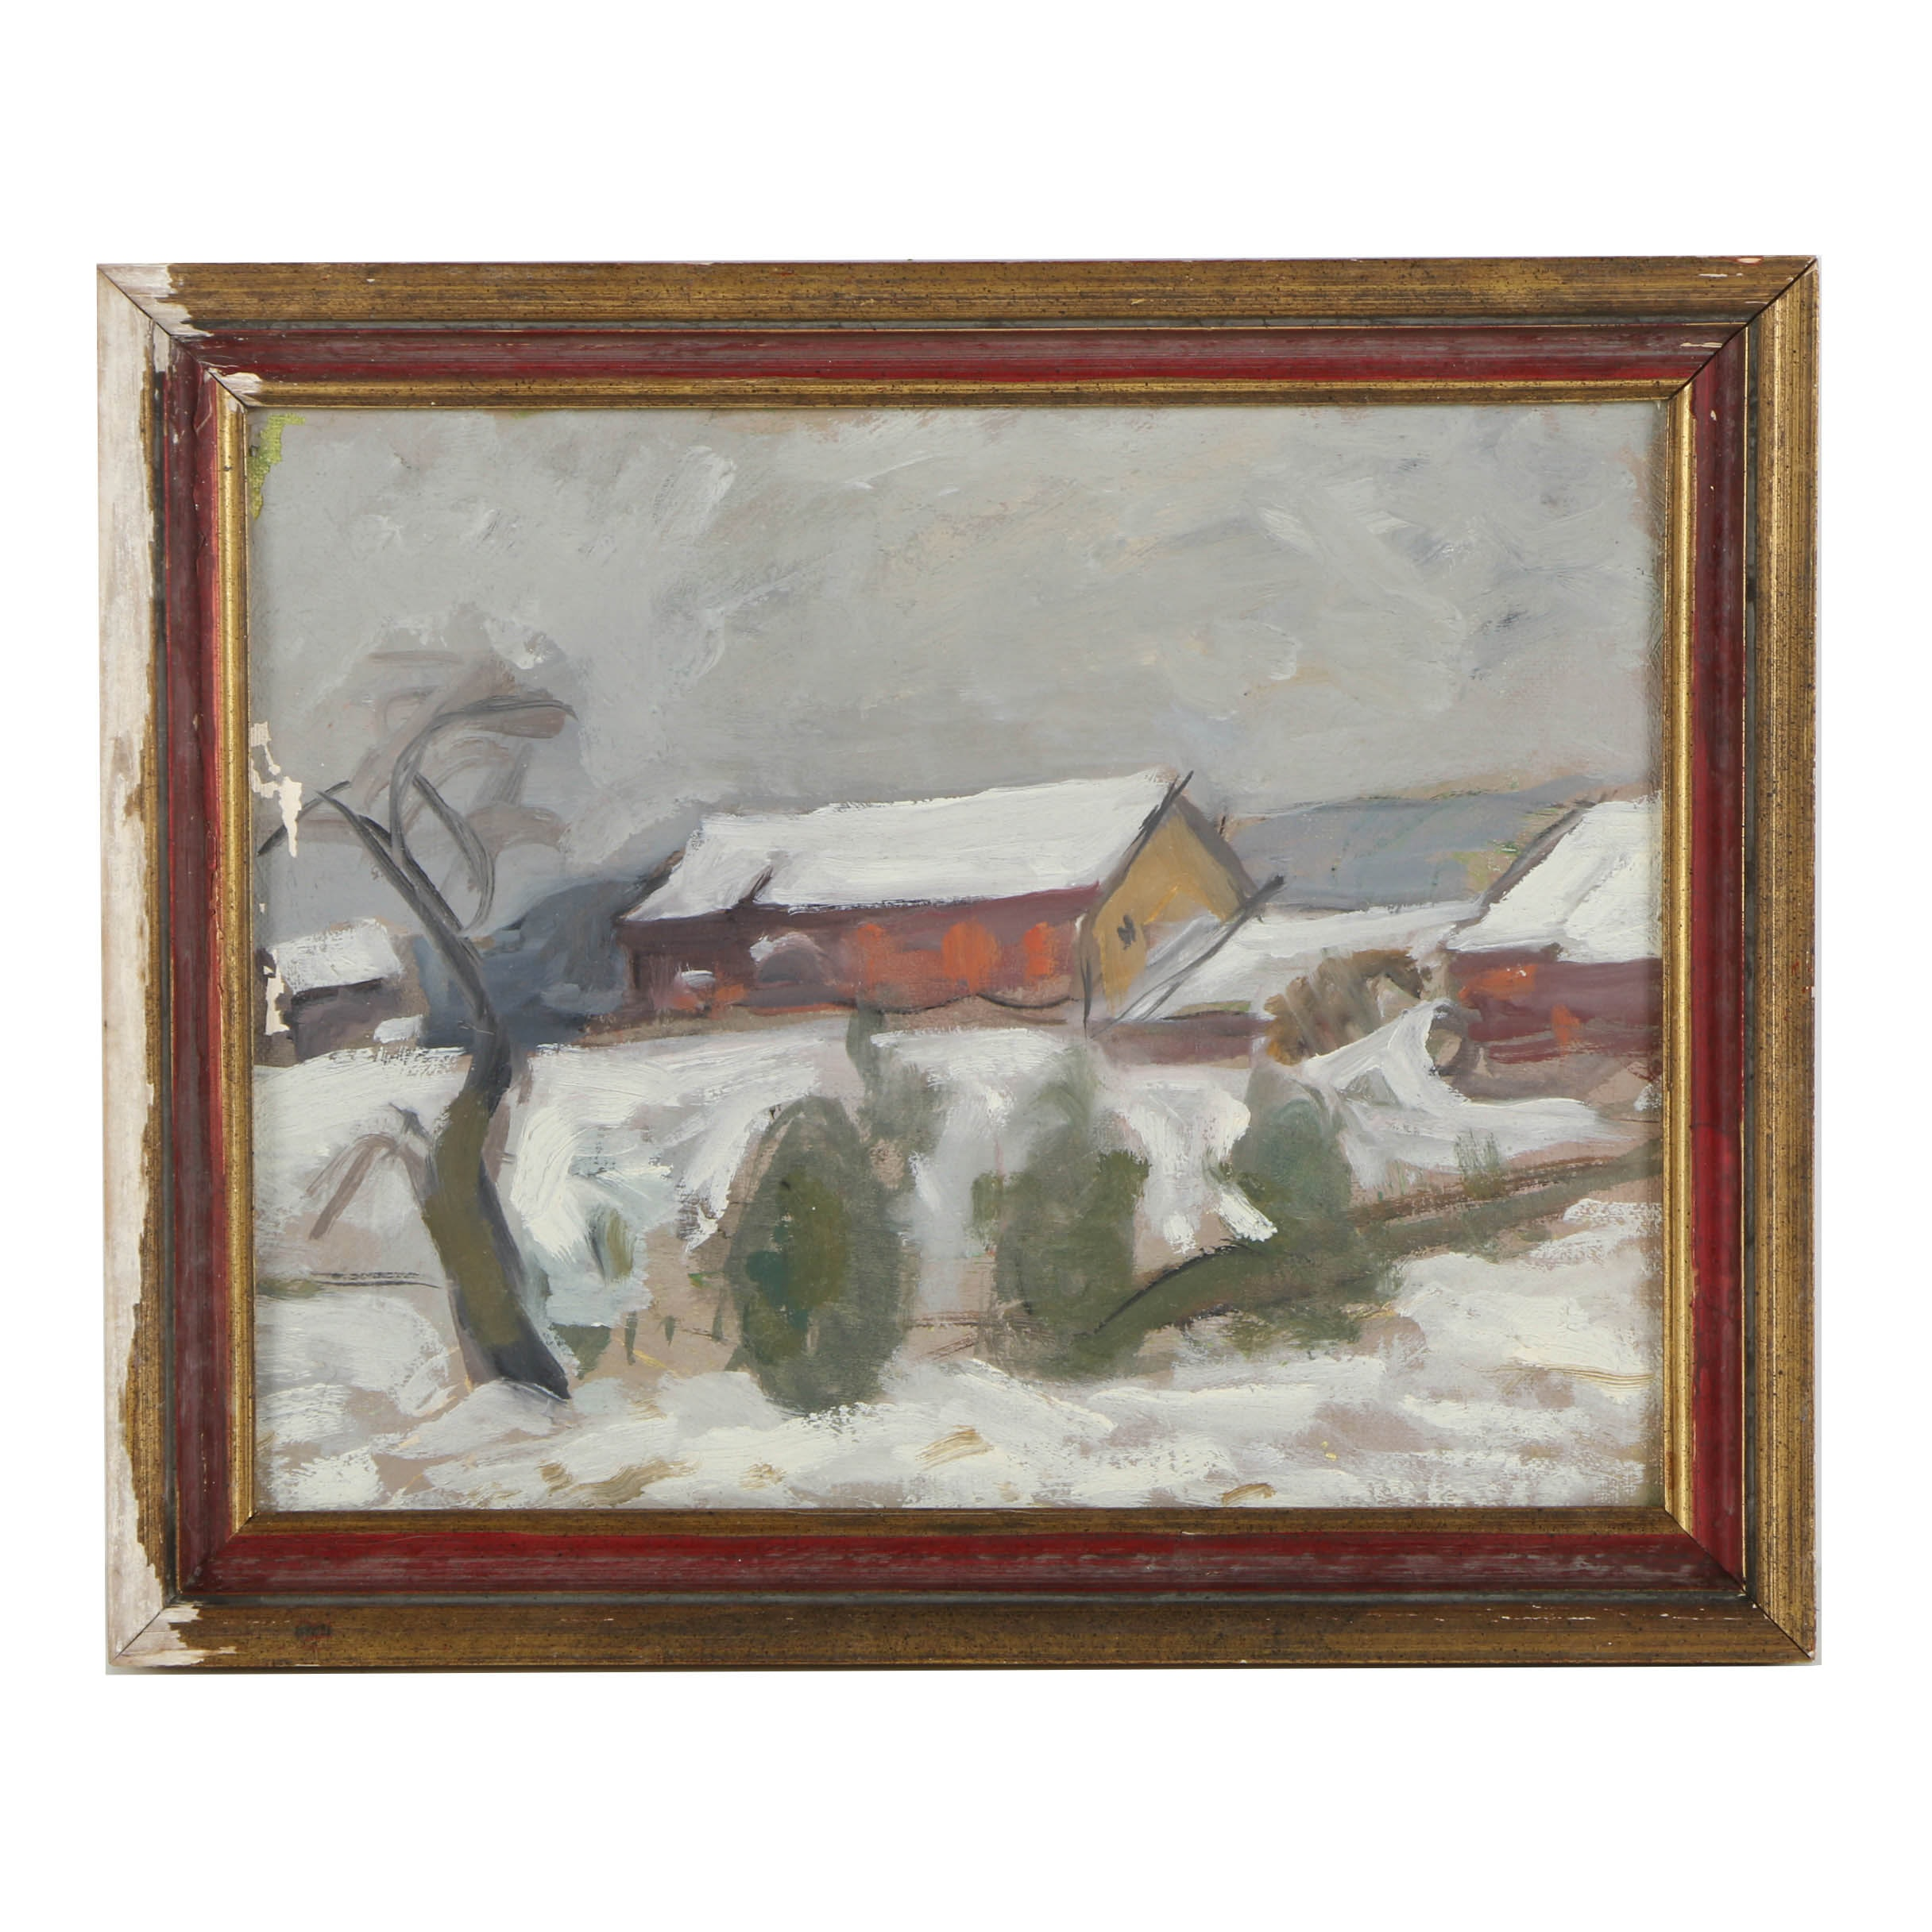 Oil Painting on Canvas Panel of Rural Winterscape